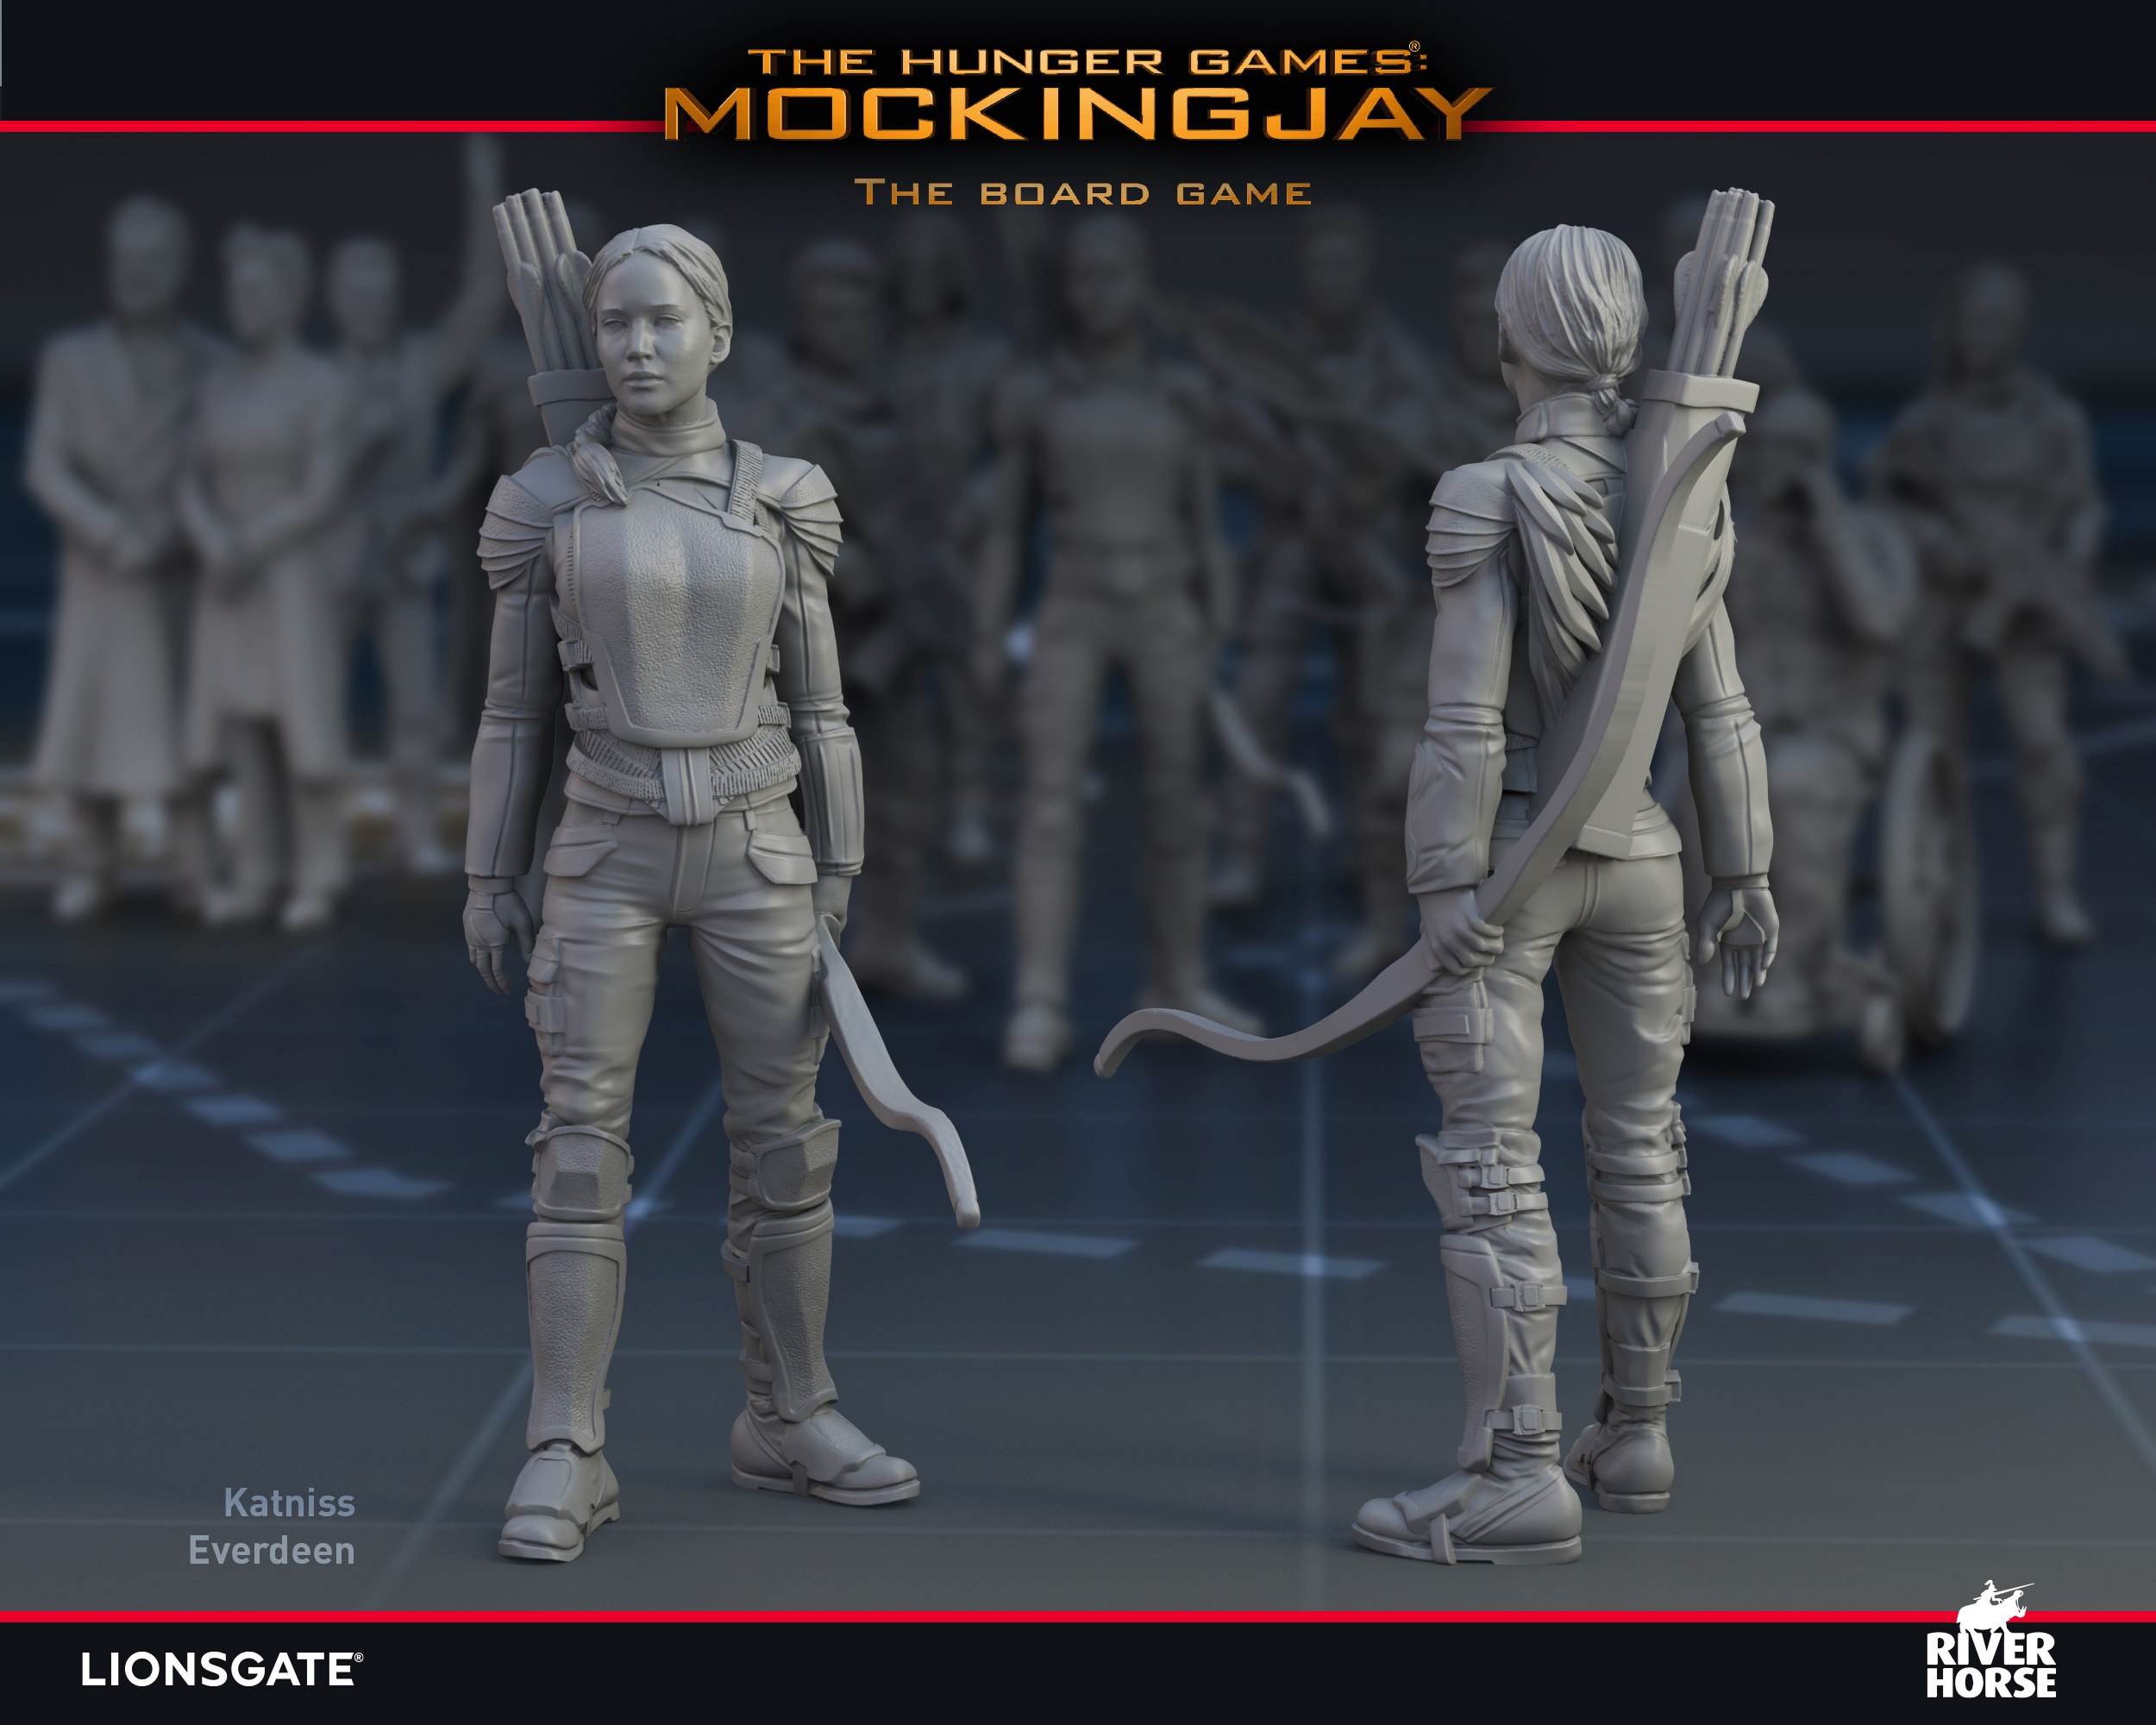 Katniss Everdeen - Unpainted Render